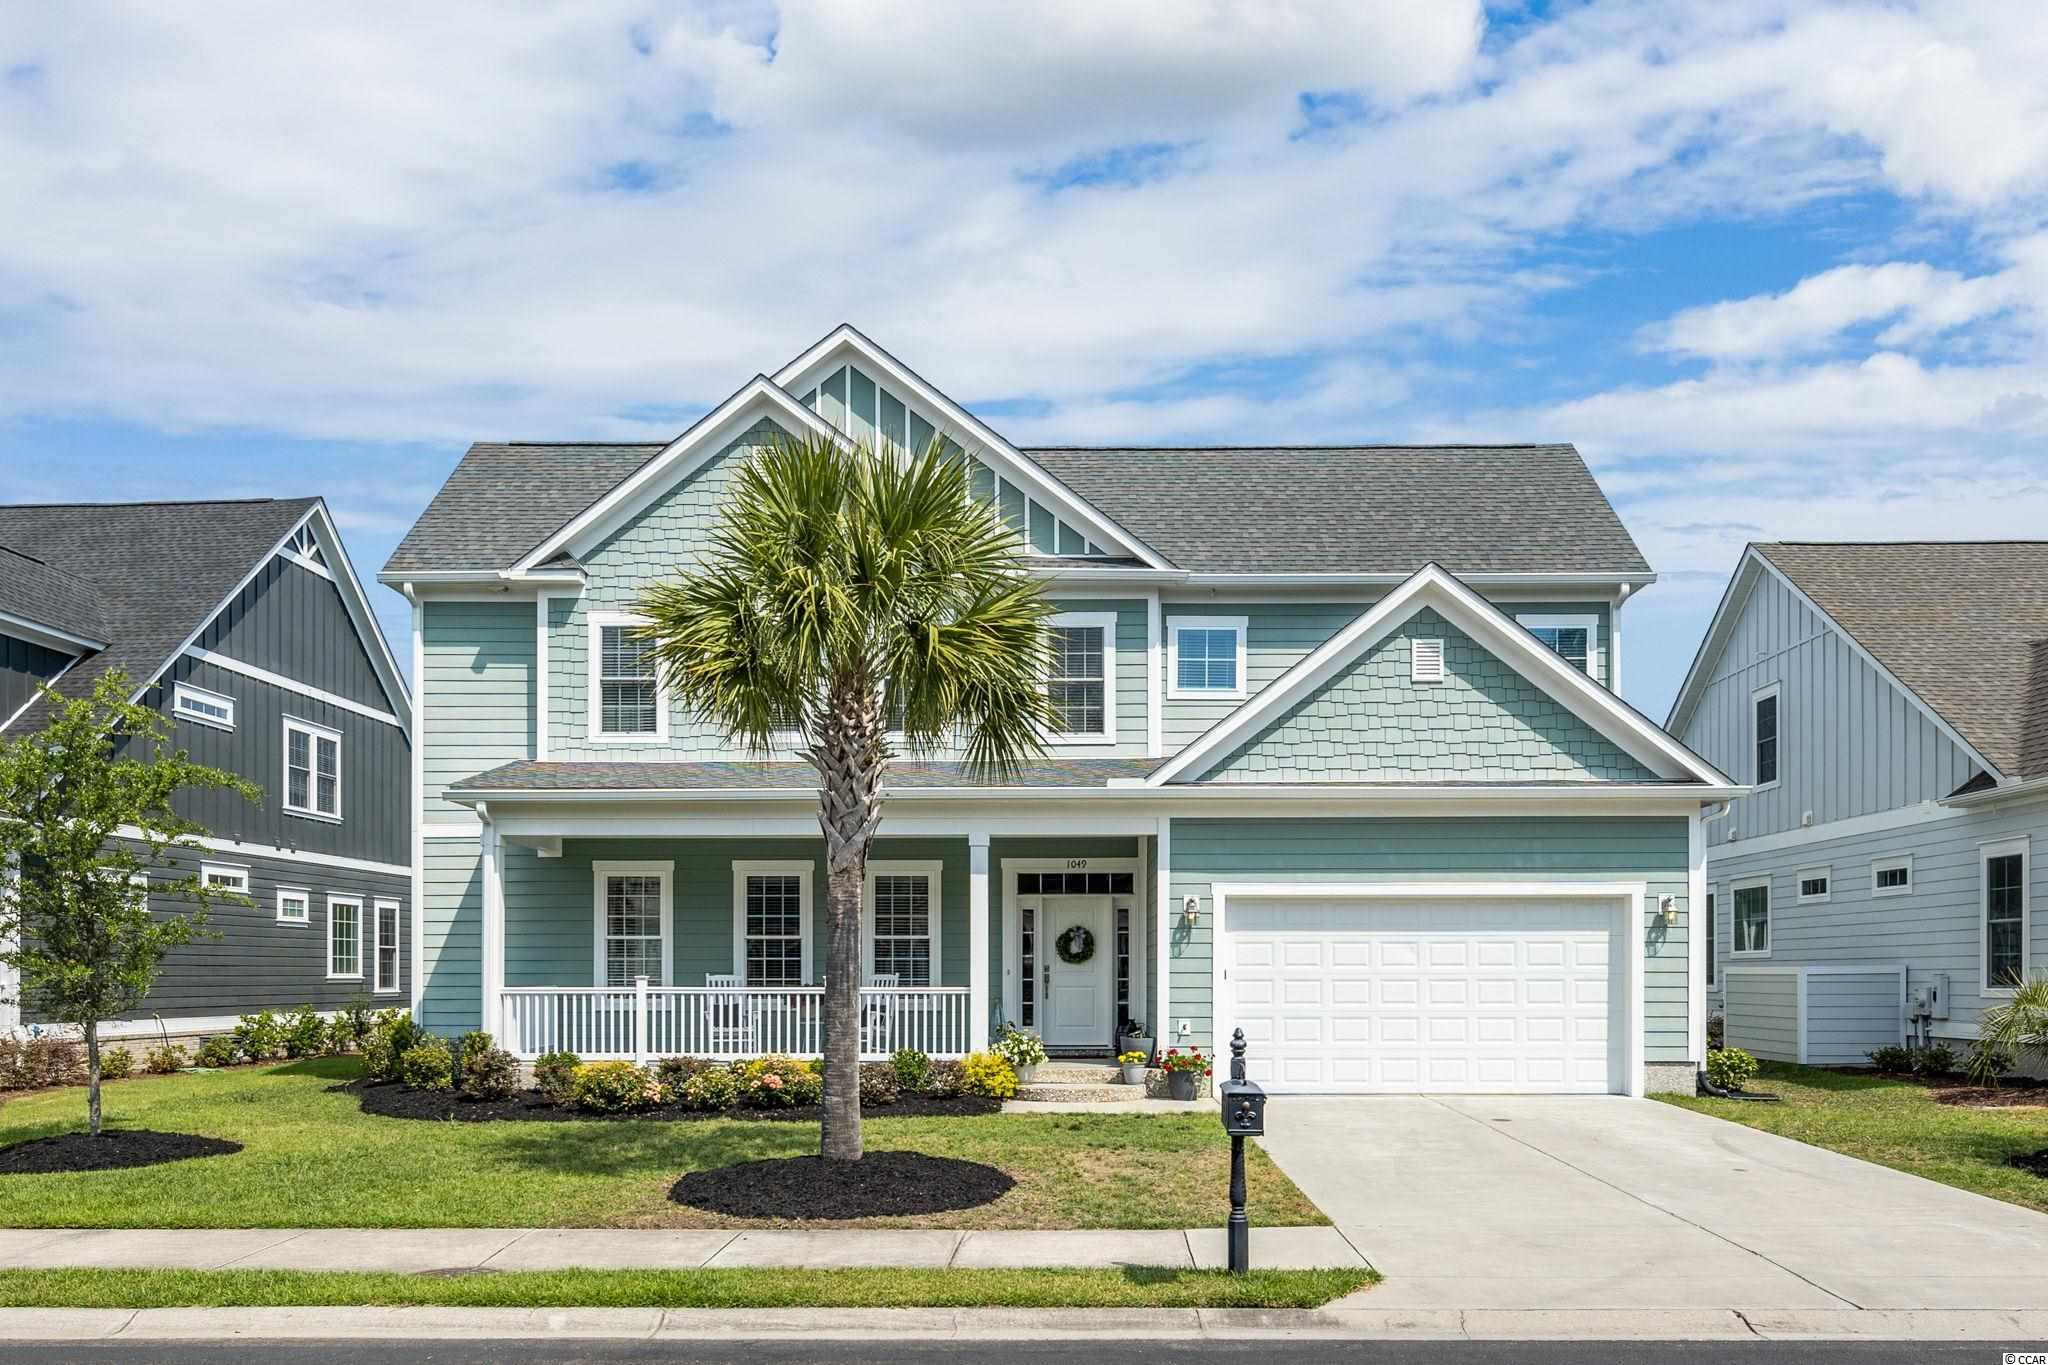 Beautiful 5 bedroom, 3.5 bath family home located in Waterway Palms Plantation, one of Myrtle Beach's most popular neighborhoods! This home offers an open floor plan with upgrades galore, starting with the porcelain tiled floor which has a wood look throughout the foyer, kitchen, dining and family room. The kitchen features an oversized counter height island, stainless appliances, custom cabinets, granite countertops, tiled backsplash and a large walk-in pantry. This home has a unique floor plan for this neighborhood. The 1st floor has a split-bedroom plan with the Master Bedroom on one side and 2 additional guest bedrooms which share a Jack and Jill bath on the other.  The second floor has a loft area that can be used as a second living room. Also on this floor is bedroom #4 with a full bath and a 5th bedroom that is a 21 X 28 bedroom/recreational room, that could be used for a gym, home school, office space or whatever else your needs may be. This home is situated on a .20 acre lot with a view of the pond and a fenced yard. Waterway Palms is a gated Intracoastal Waterway community in the award-winning Carolina Forest School District. This great family neighborhood offers a boat ramp, boat storage, day dock, state of the art club house with recreational room, meeting rooms, gym, tennis courts, basketball courts, bocce ball court and planned community activities and events. This home will not last long as there is limited inventory available. Call today for your private viewing!